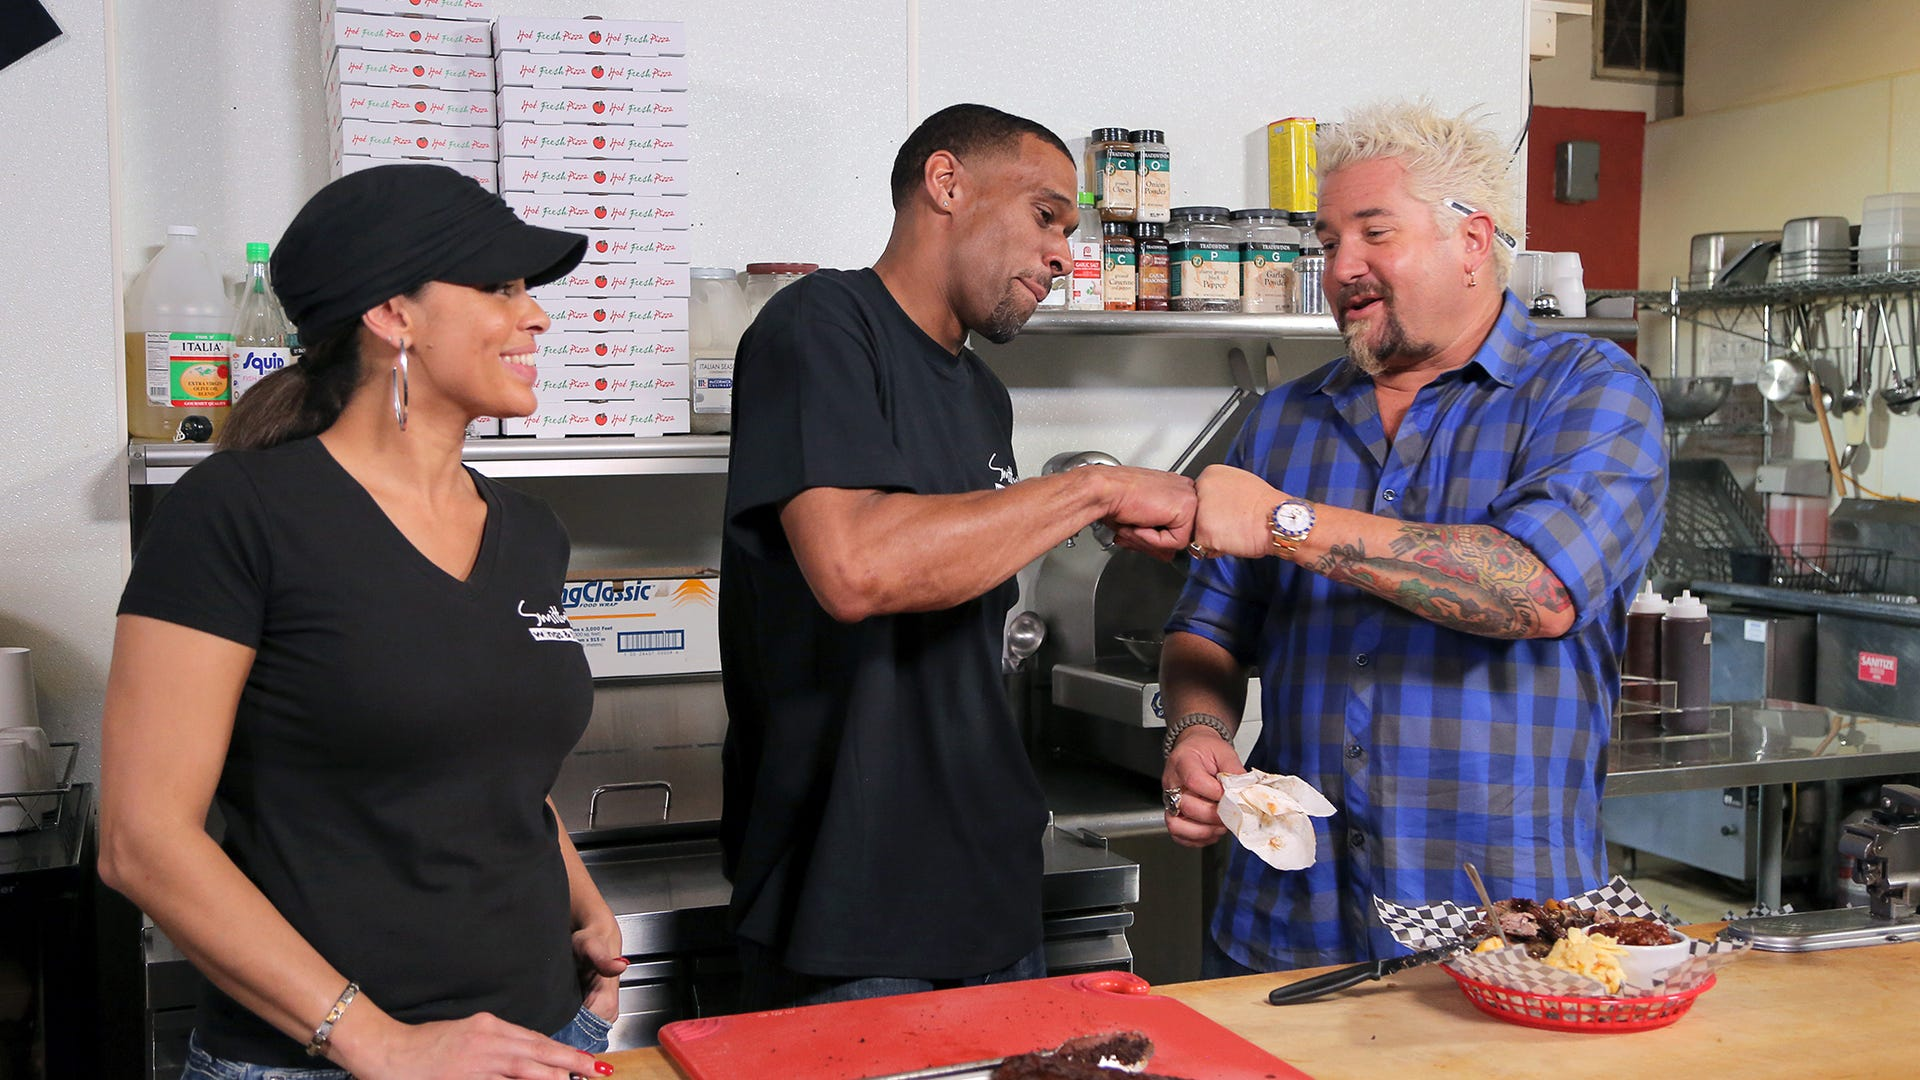 Jamie Smith and Steve Smith, co-owners of Smitty's Wings & Things in Stockton, California, and host Guy Fieri, Diners, Drive-Ins and Dives